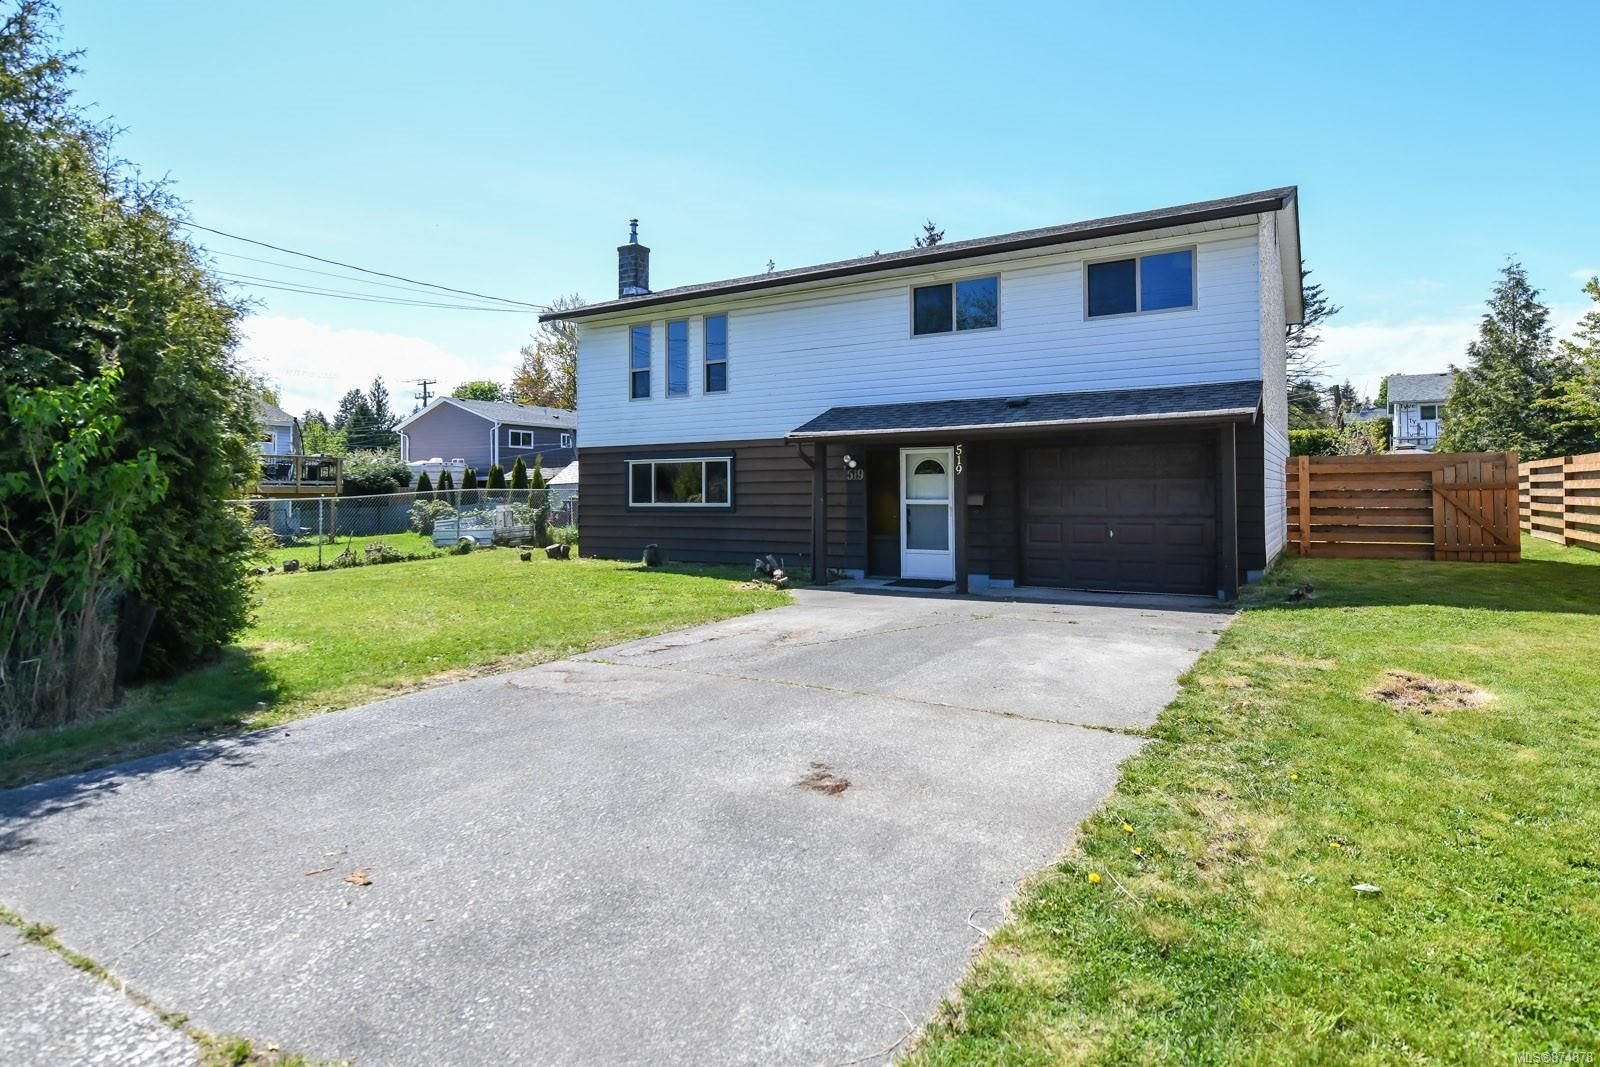 Main Photo: 519 Pritchard Rd in : CV Comox (Town of) House for sale (Comox Valley)  : MLS®# 874878